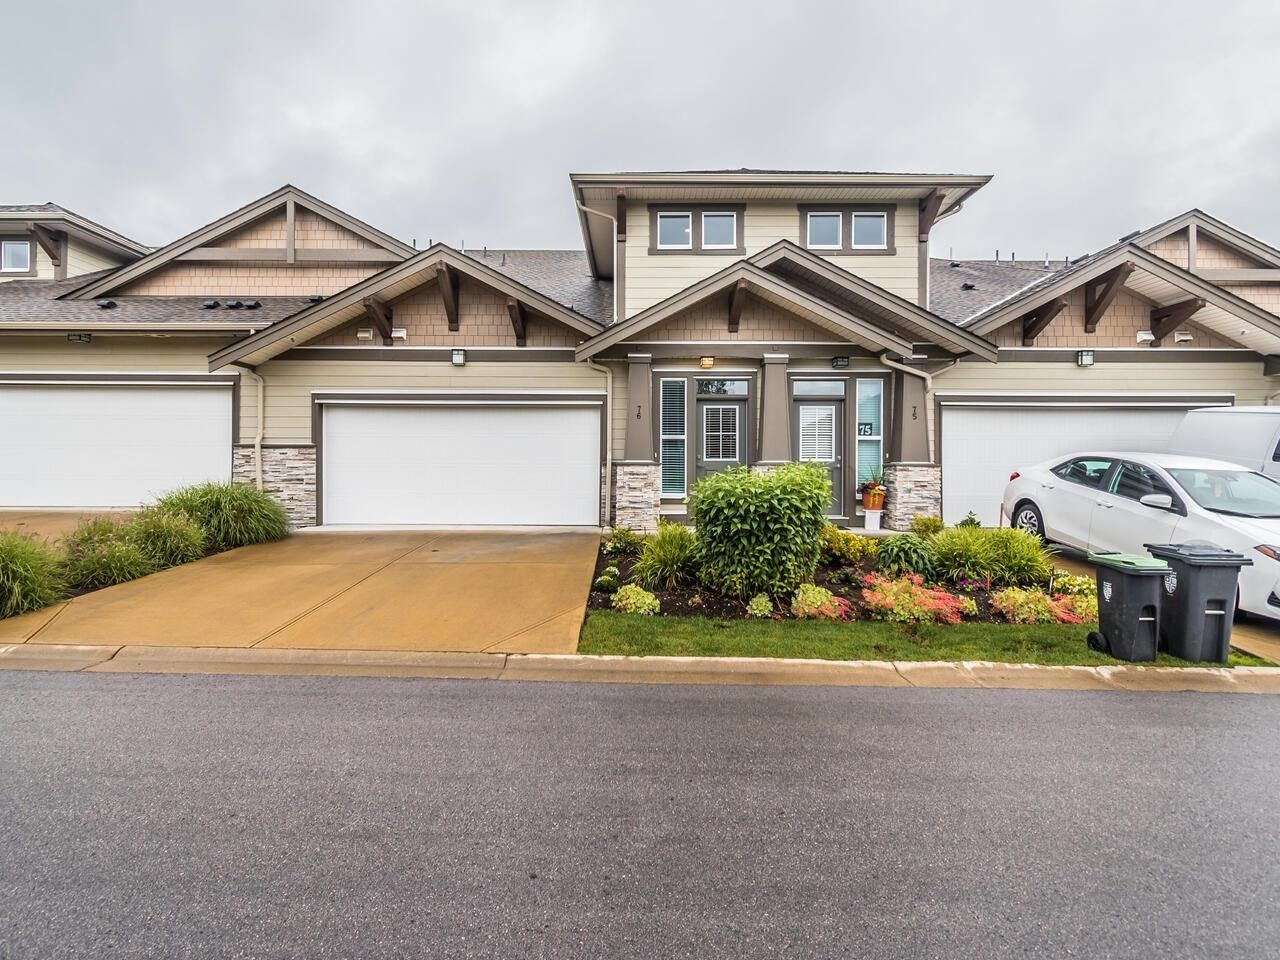 """Main Photo: 76 7138 210 Street in Langley: Willoughby Heights Townhouse for sale in """"PRESTWICK"""" : MLS®# R2593817"""